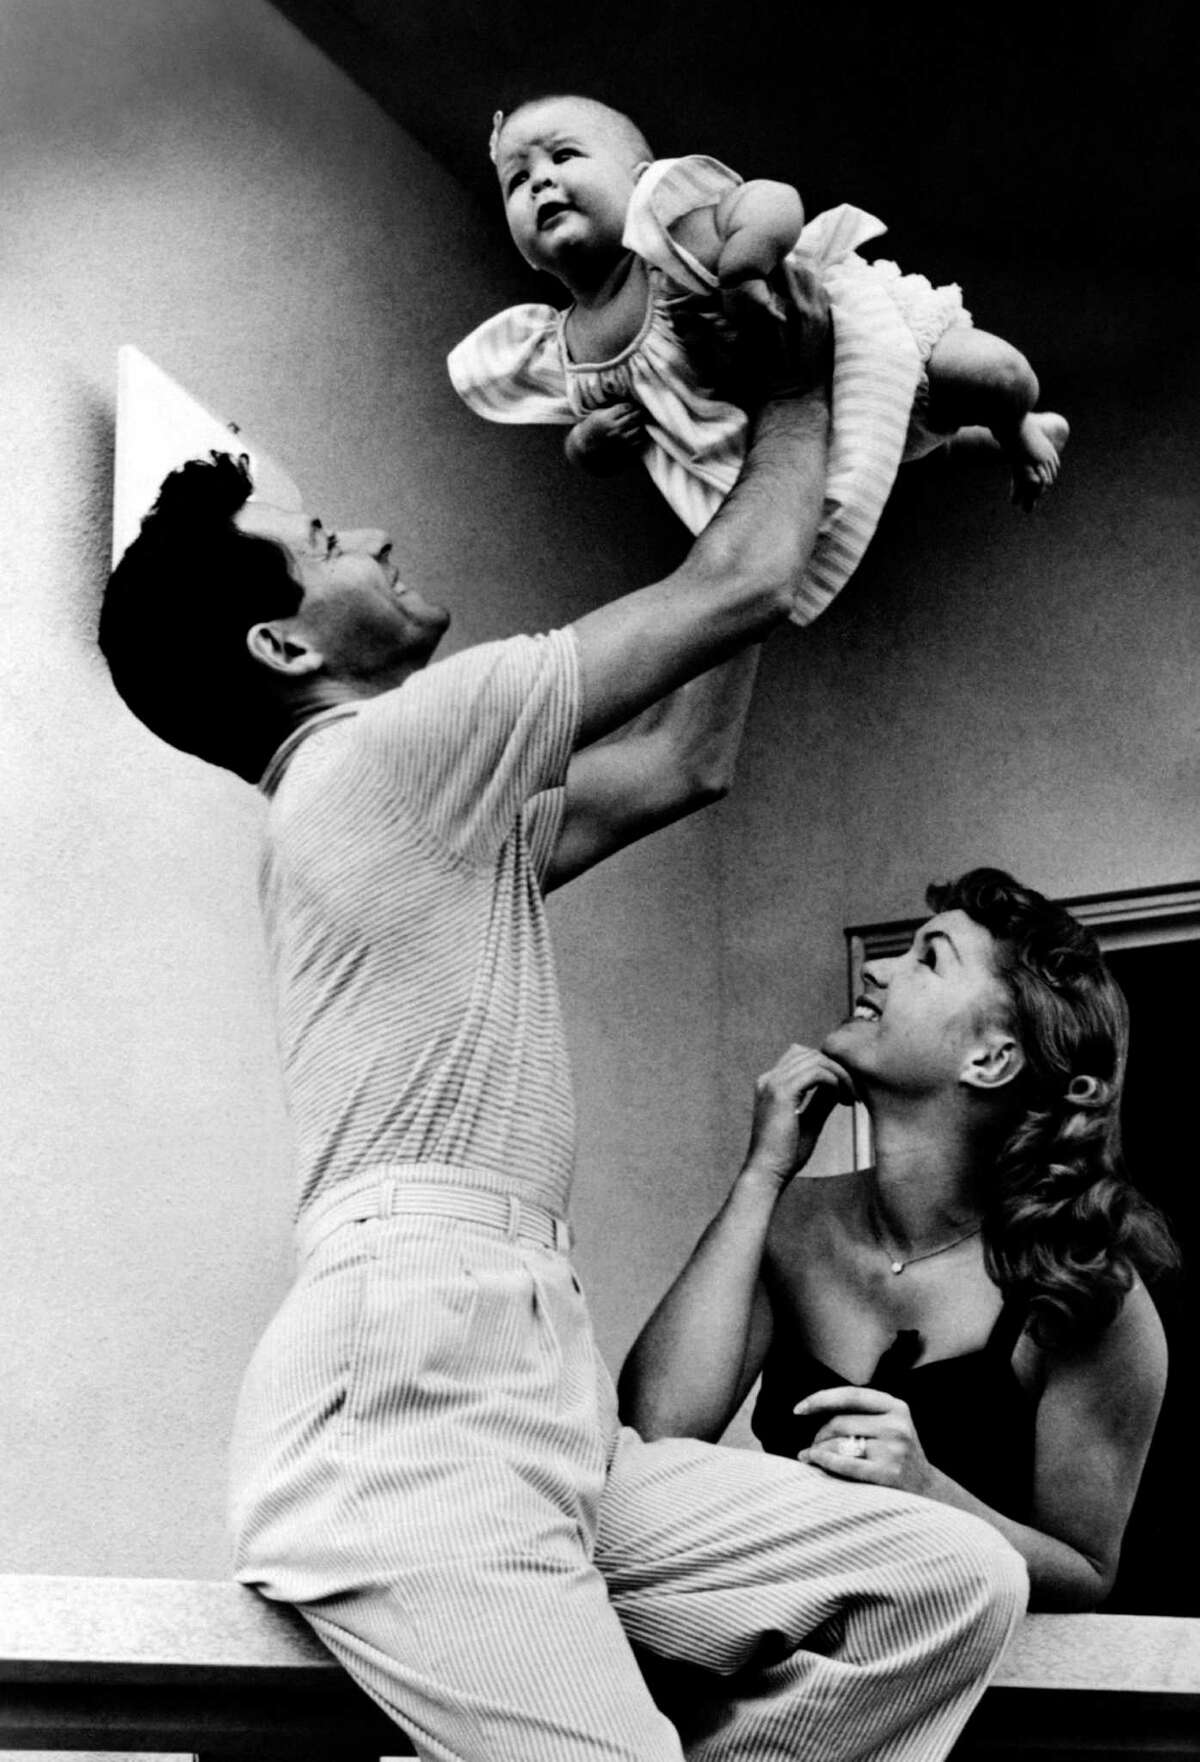 Carrie Fisher (that's her being held aloft) was born Oct. 21, 1956, the daughter of singer Eddie Fisher (left) and actress Debbie Reynolds (right). This photo was taken in 1957, but the source doesn't say when.